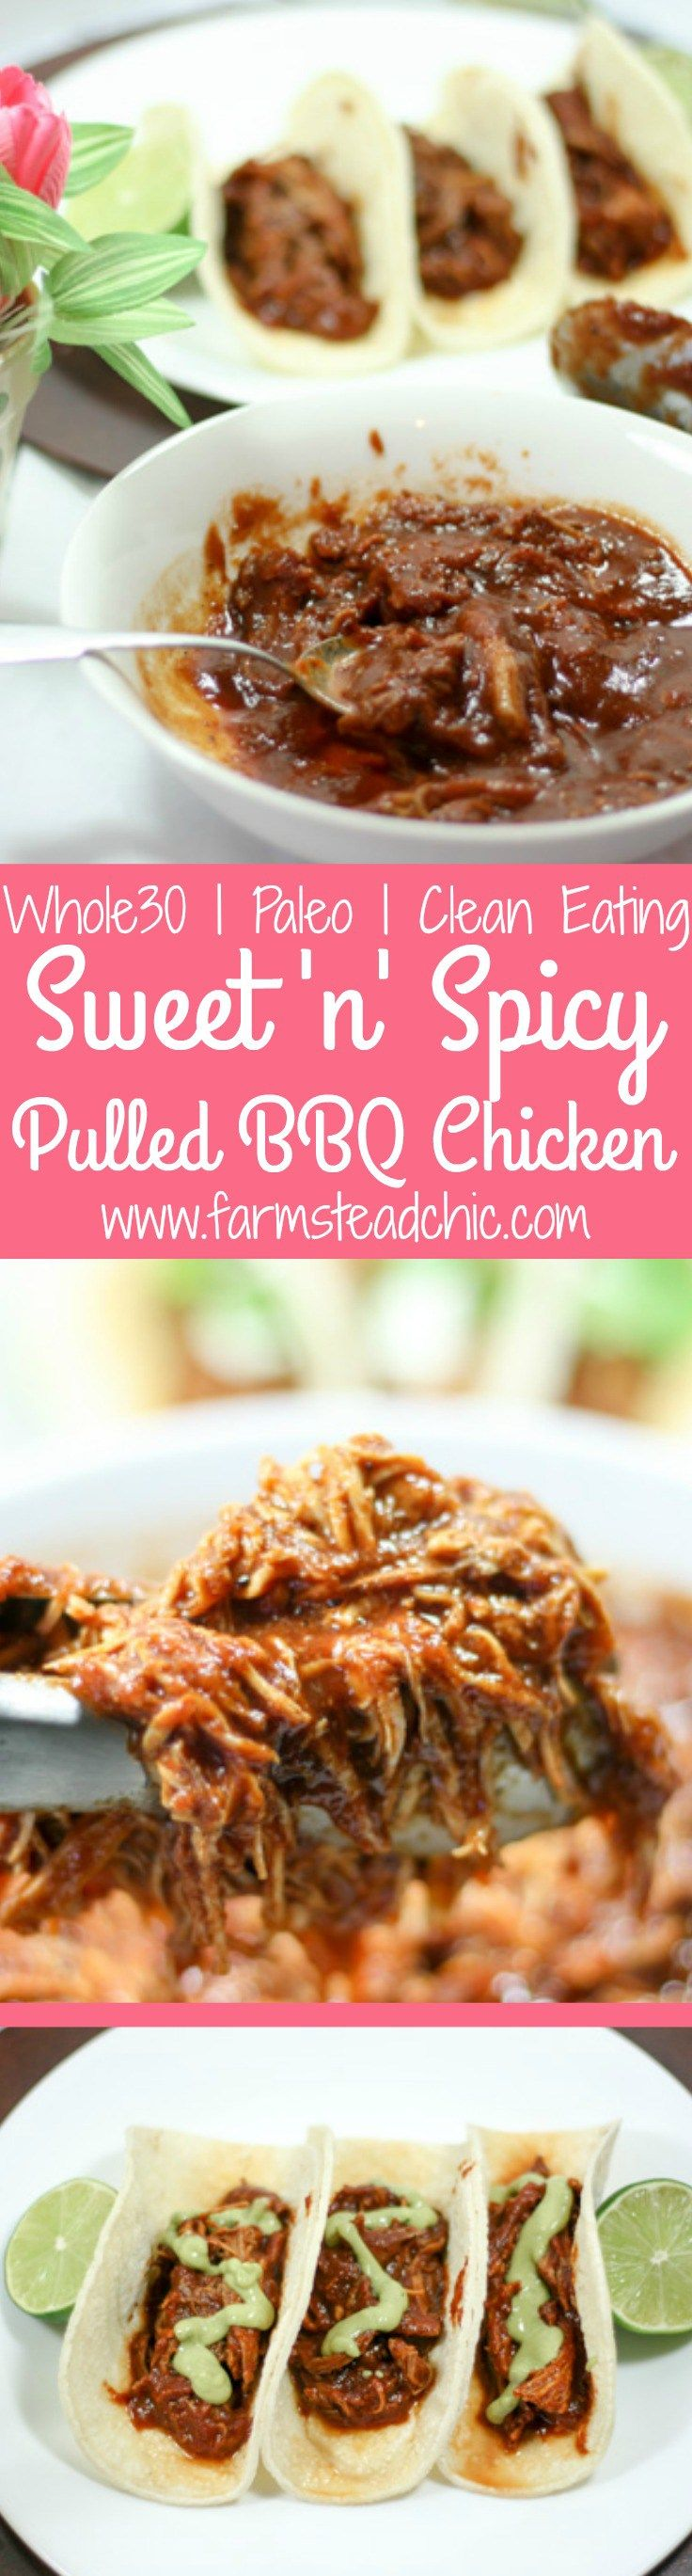 This Paleo and Whole30 Slow Cooker Pulled Barbecue Chicken is legit. It's full of flavor, super-simple to make + easy on the budget.Gluten-free, dairy-free.